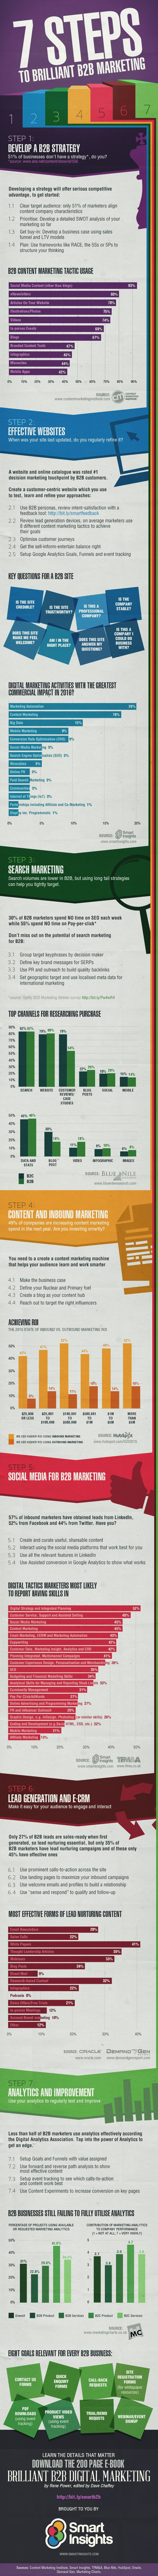 7 Steps to Brilliant B2B Marketing Infographic